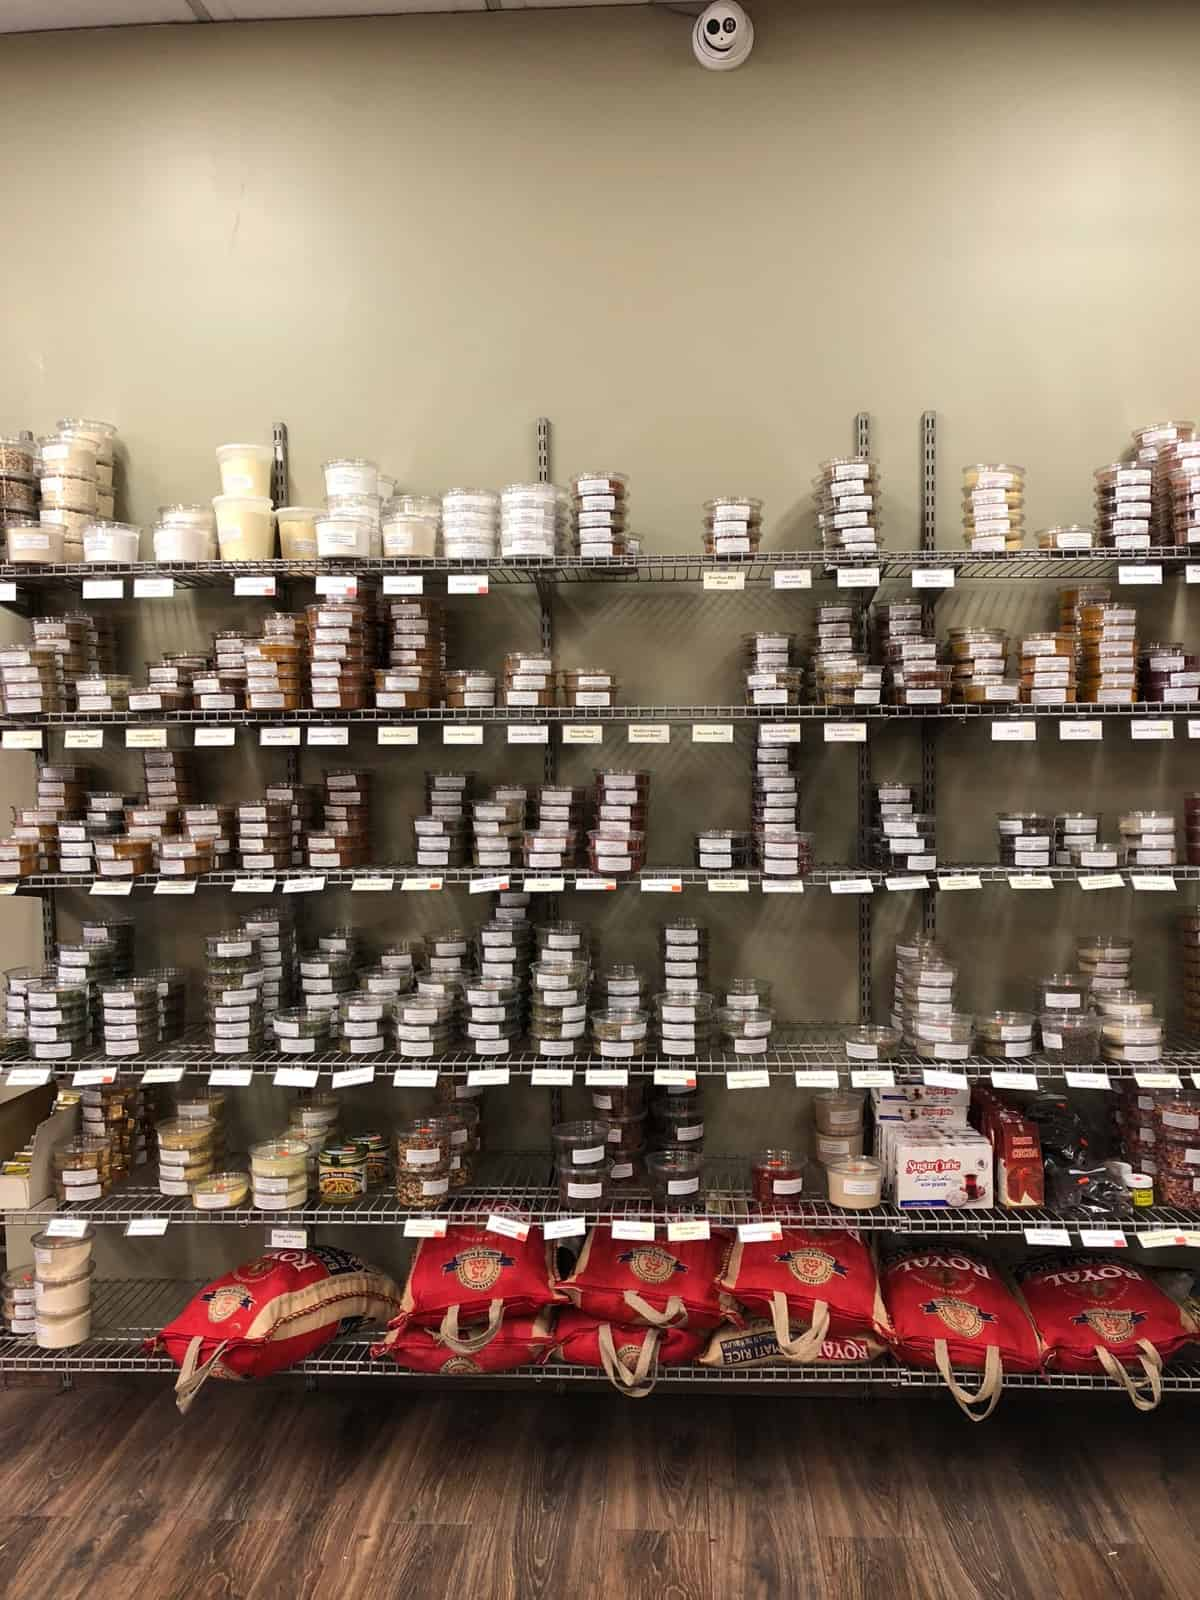 Wall of spices at Middle Eastern Bakery and Grocery in Chicago, IL